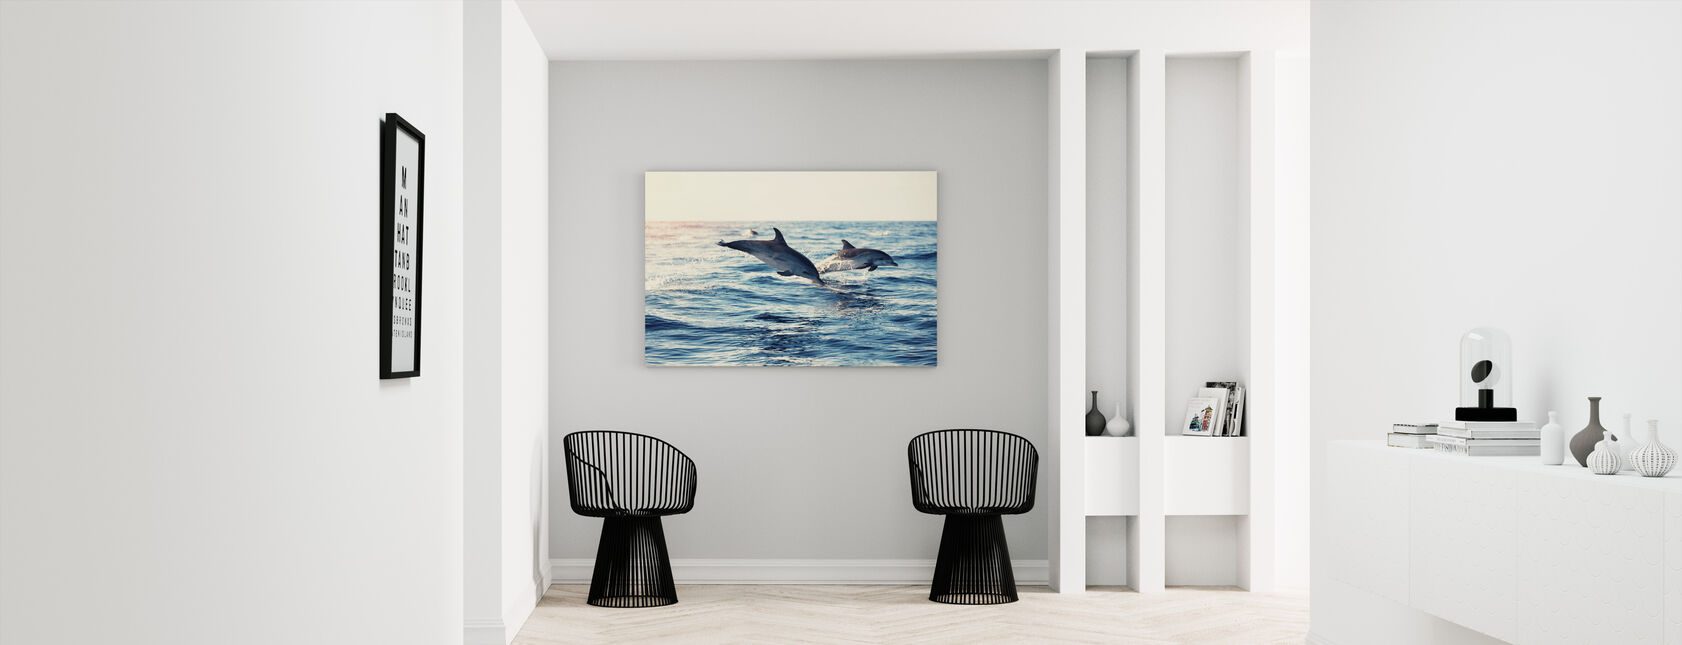 Dolphins Jumping from the Sea - Canvas print - Hallway